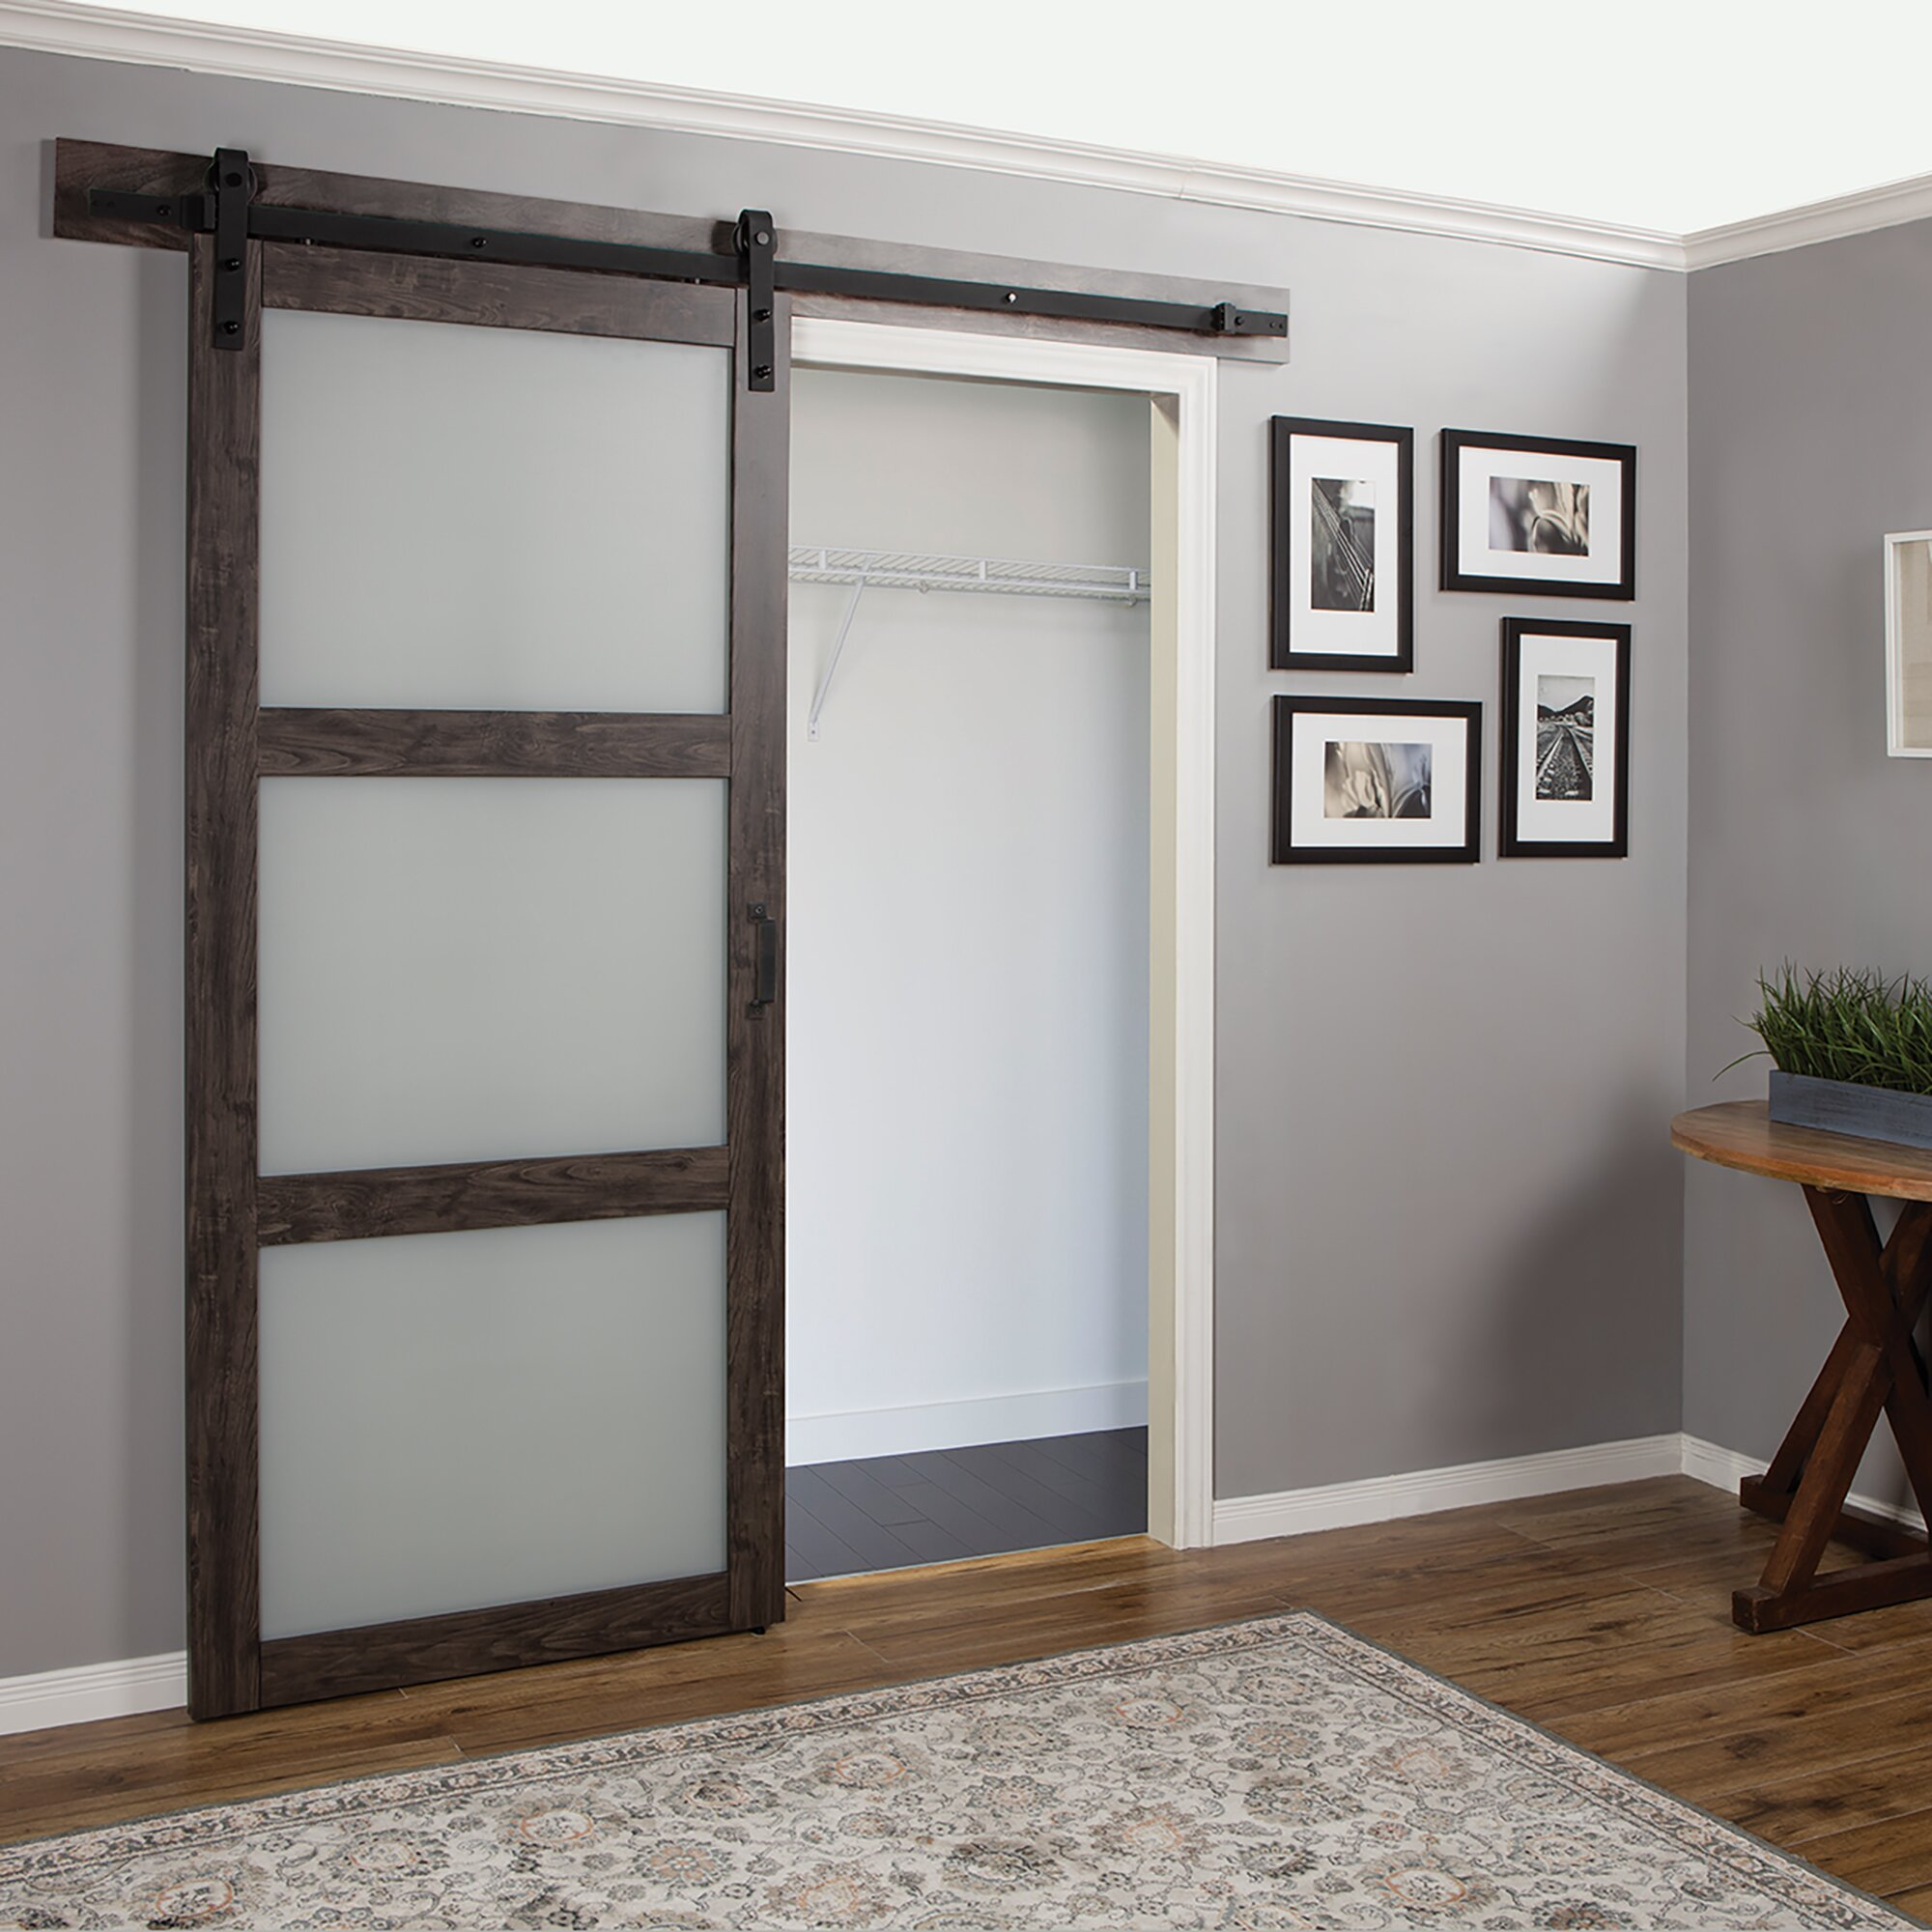 erias home designs continental frosted glass 1 panel ironage laminate interior barn door. Black Bedroom Furniture Sets. Home Design Ideas